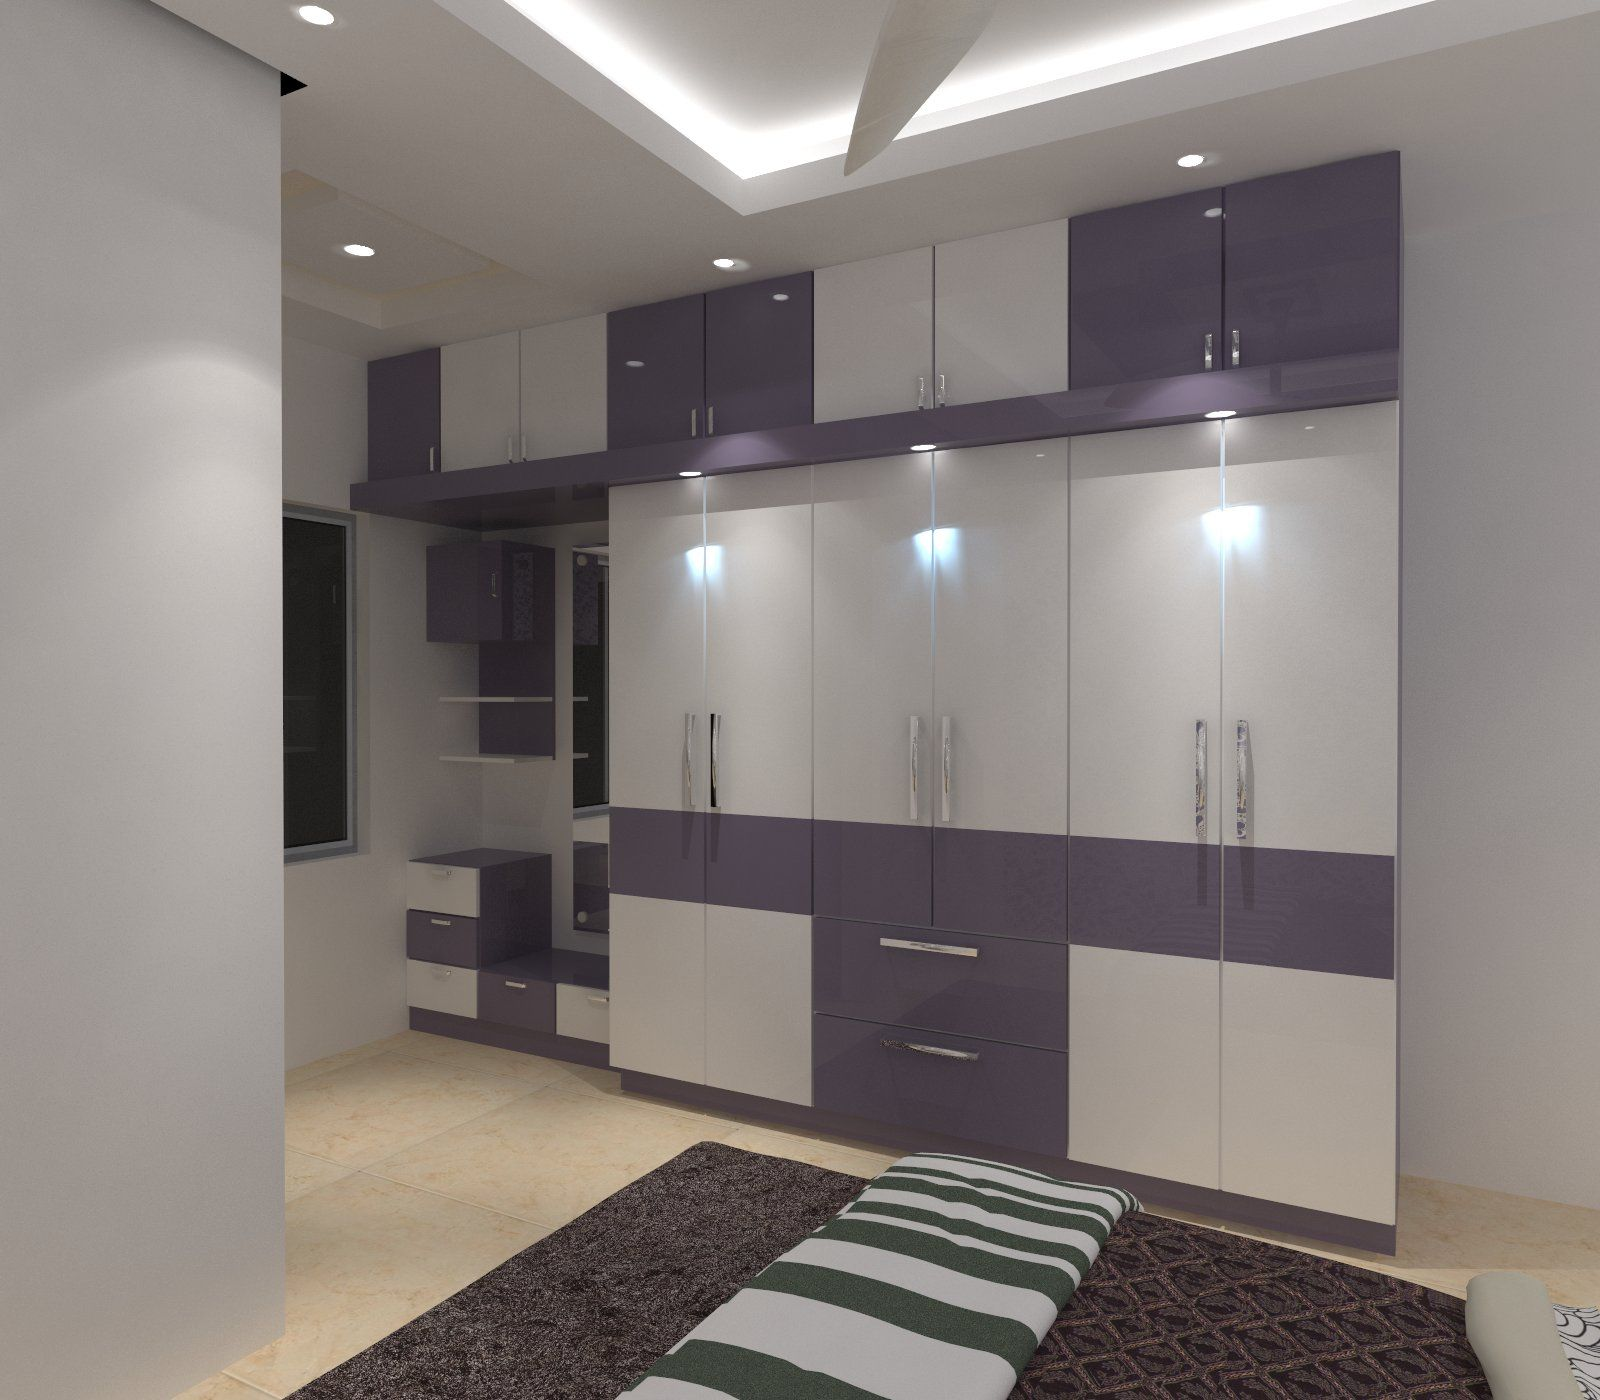 Pin By App Jani On Kabot With Images Ceiling Design Living